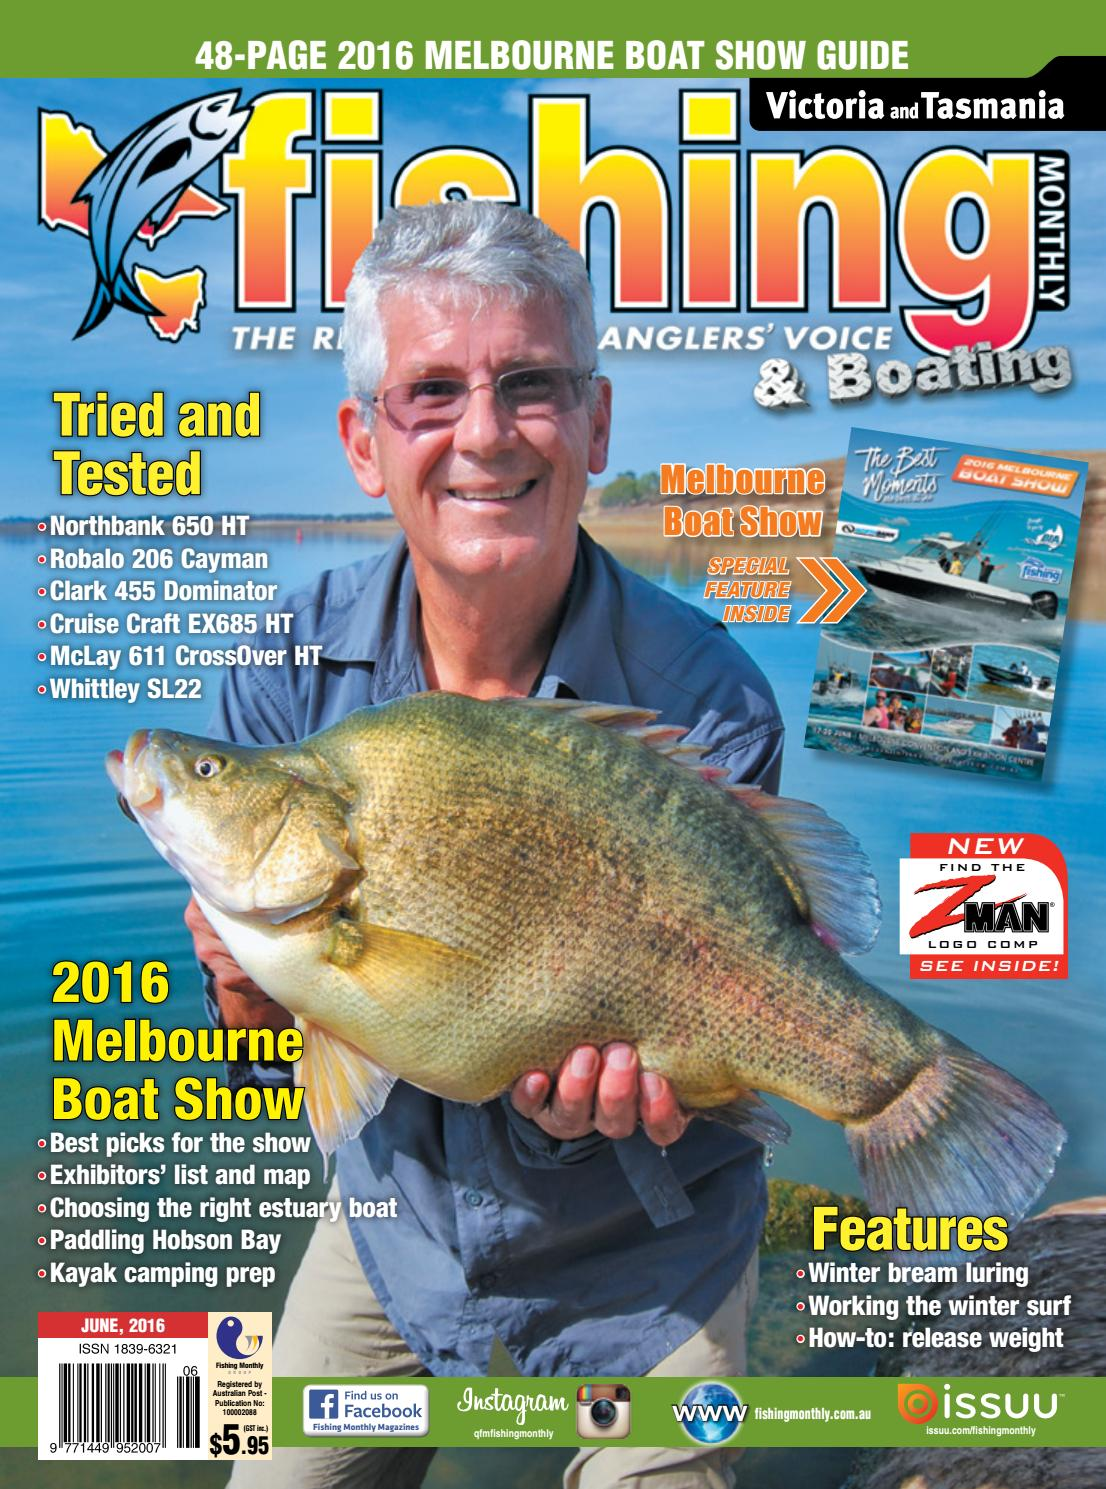 Victoria and Tasmania Fishing Monthly - June 2016 by Fishing